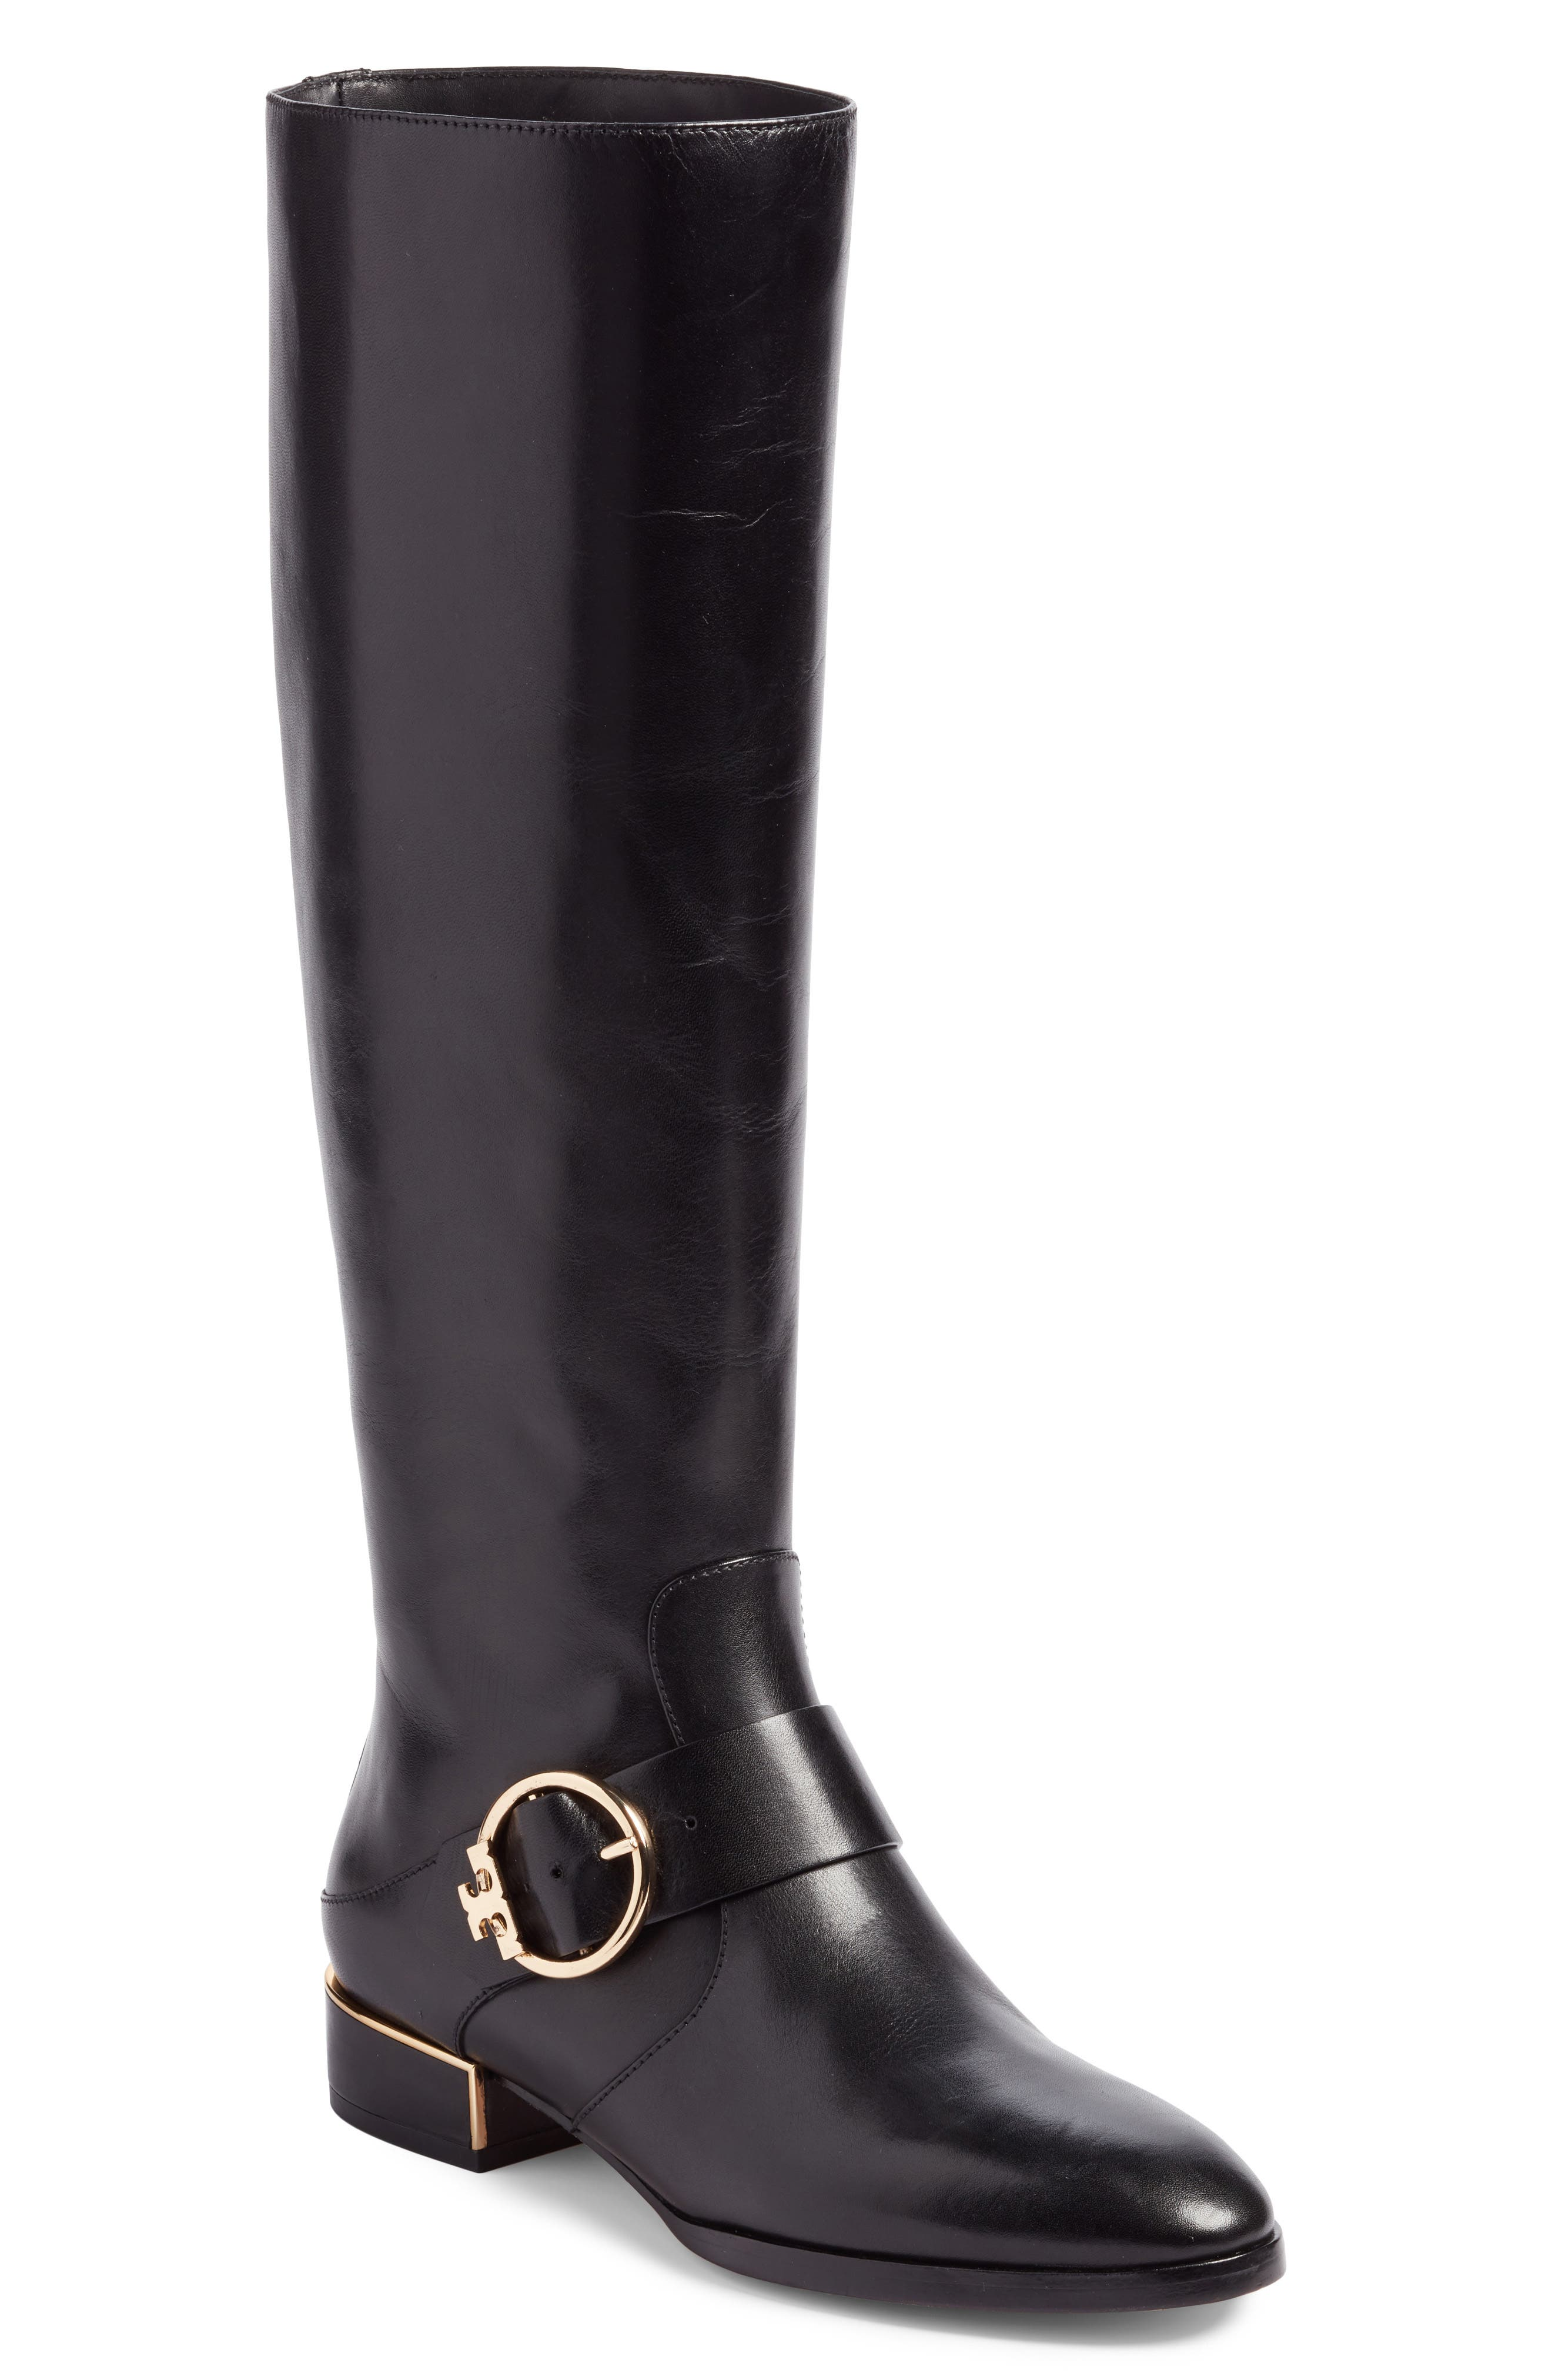 Alternate Image 1 Selected - Tory Burch Sofia Buckled Riding Boot (Women) (Regular & Wide Calf)